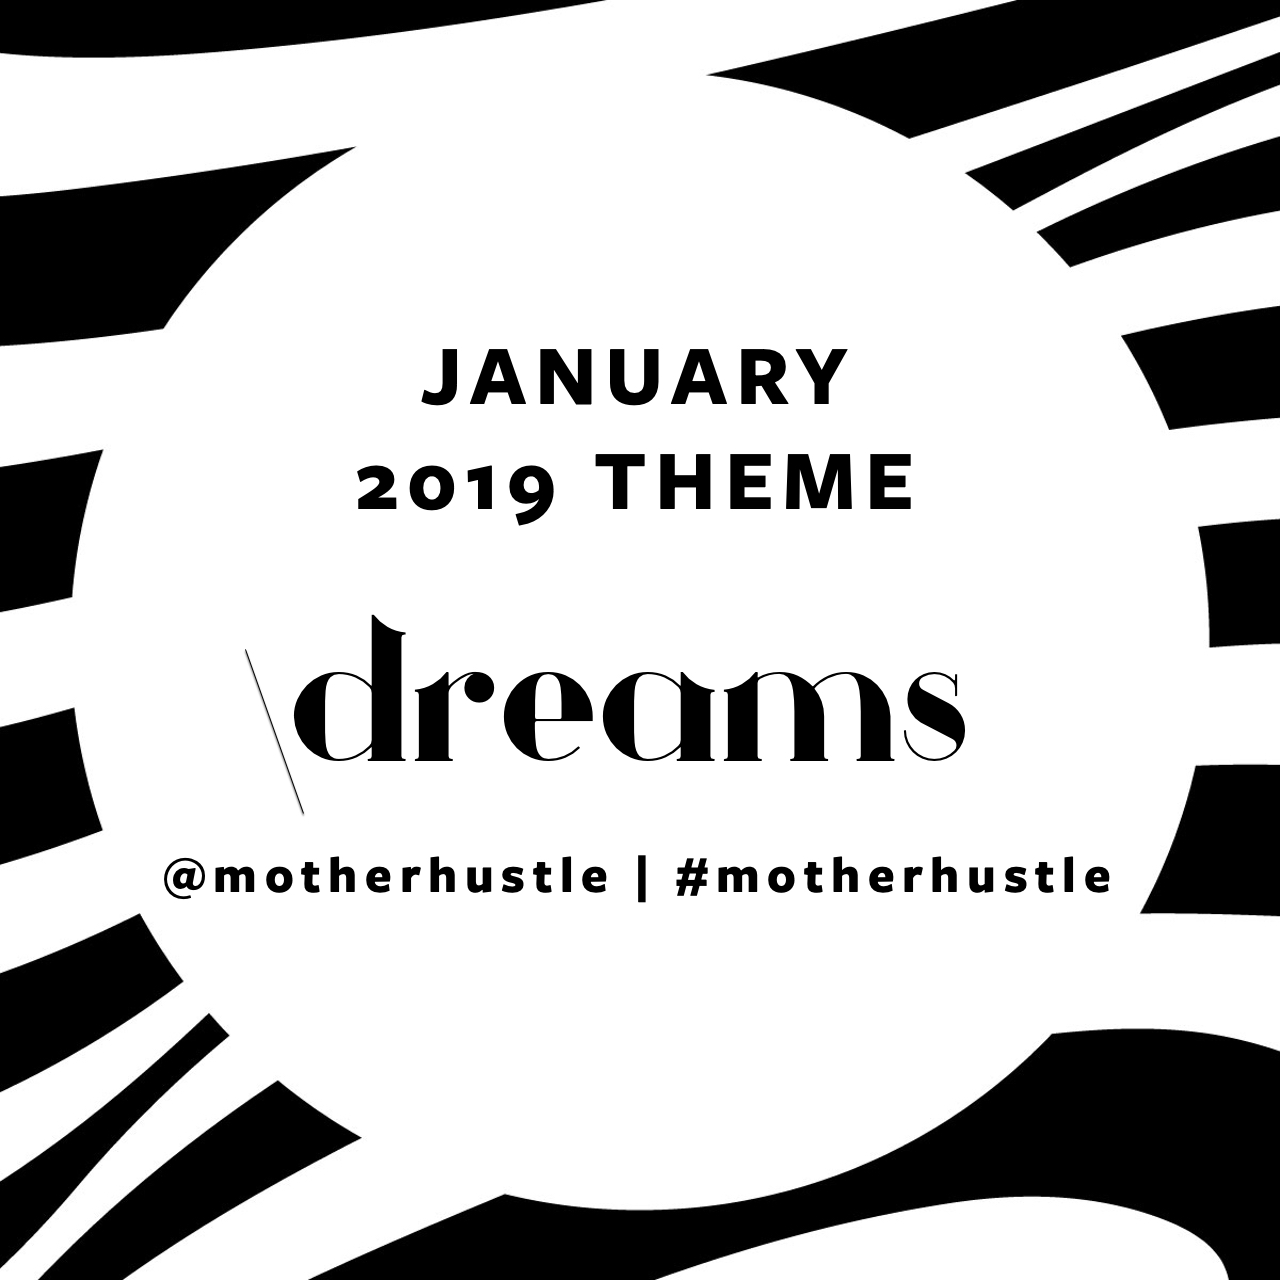 MotherHustle Theme January 2019 - Dreams